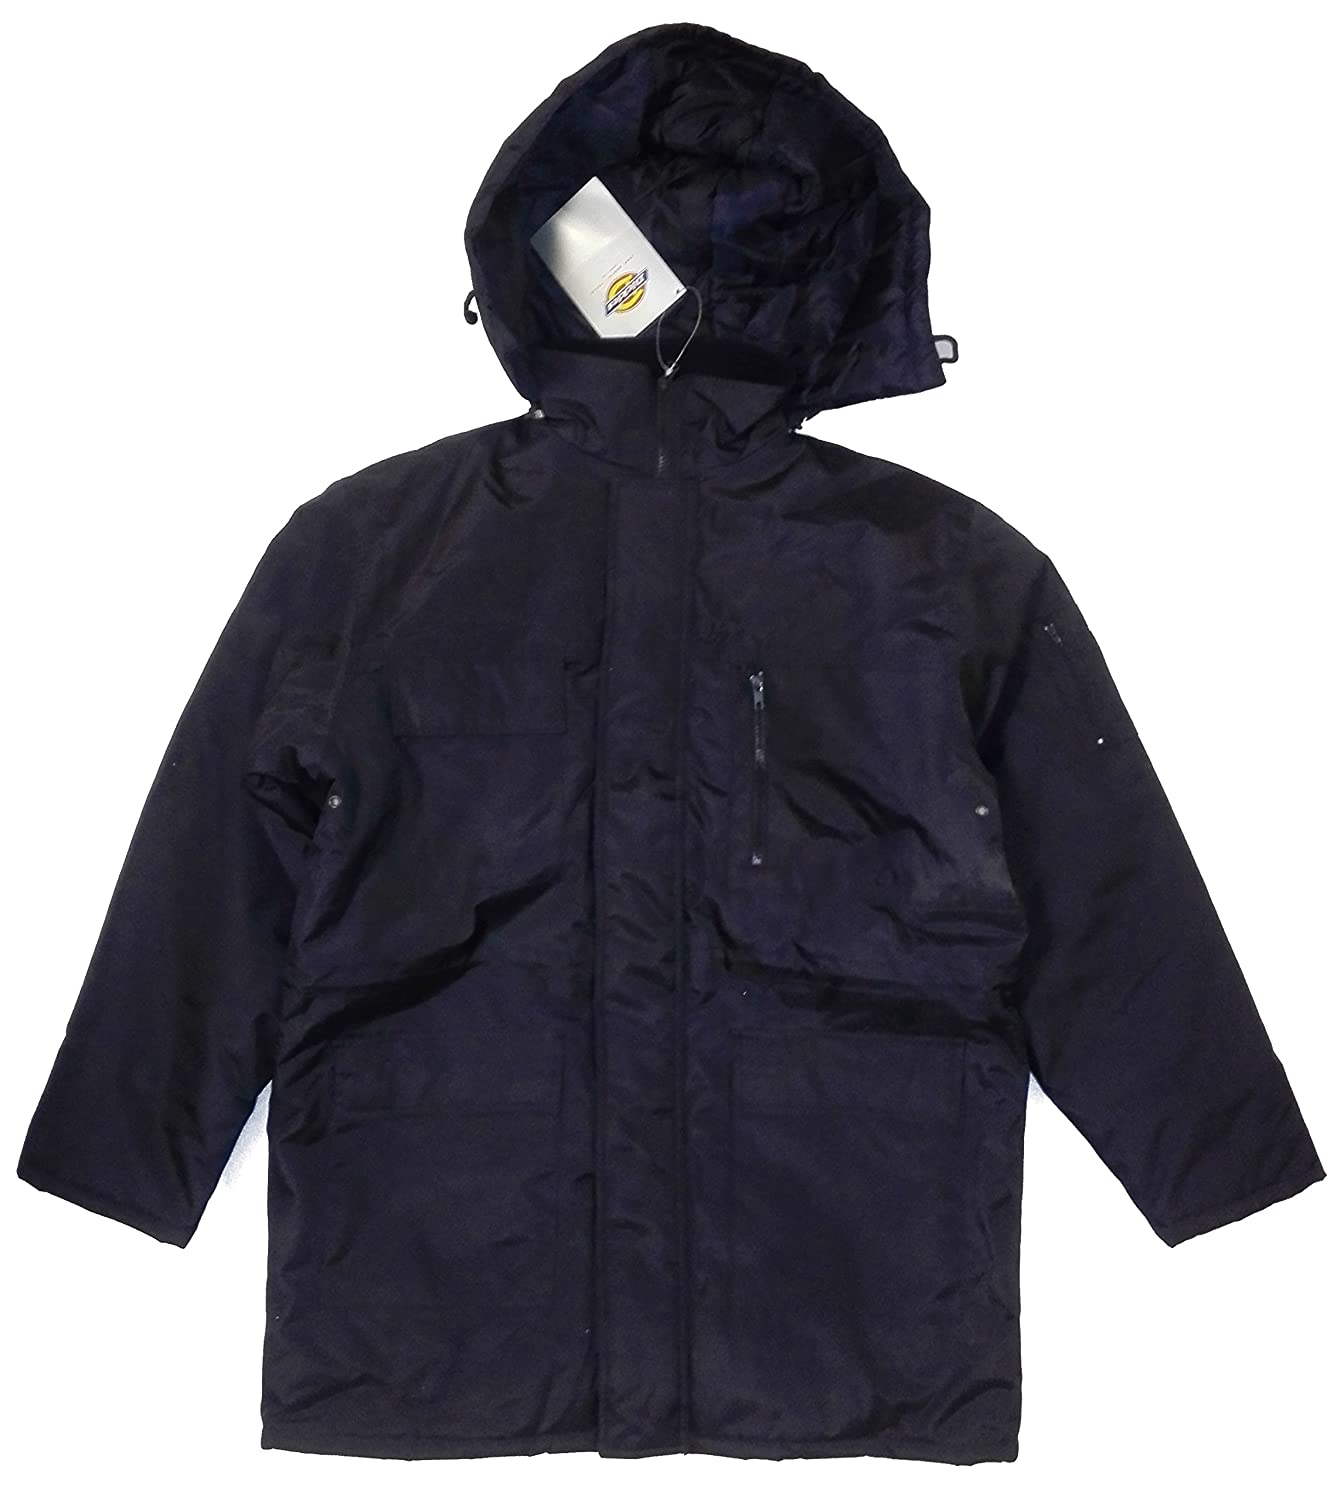 Dickies Mens Security Jacket Water Resistant Hooded Quilted Uniform Raincoat L, Large, Black